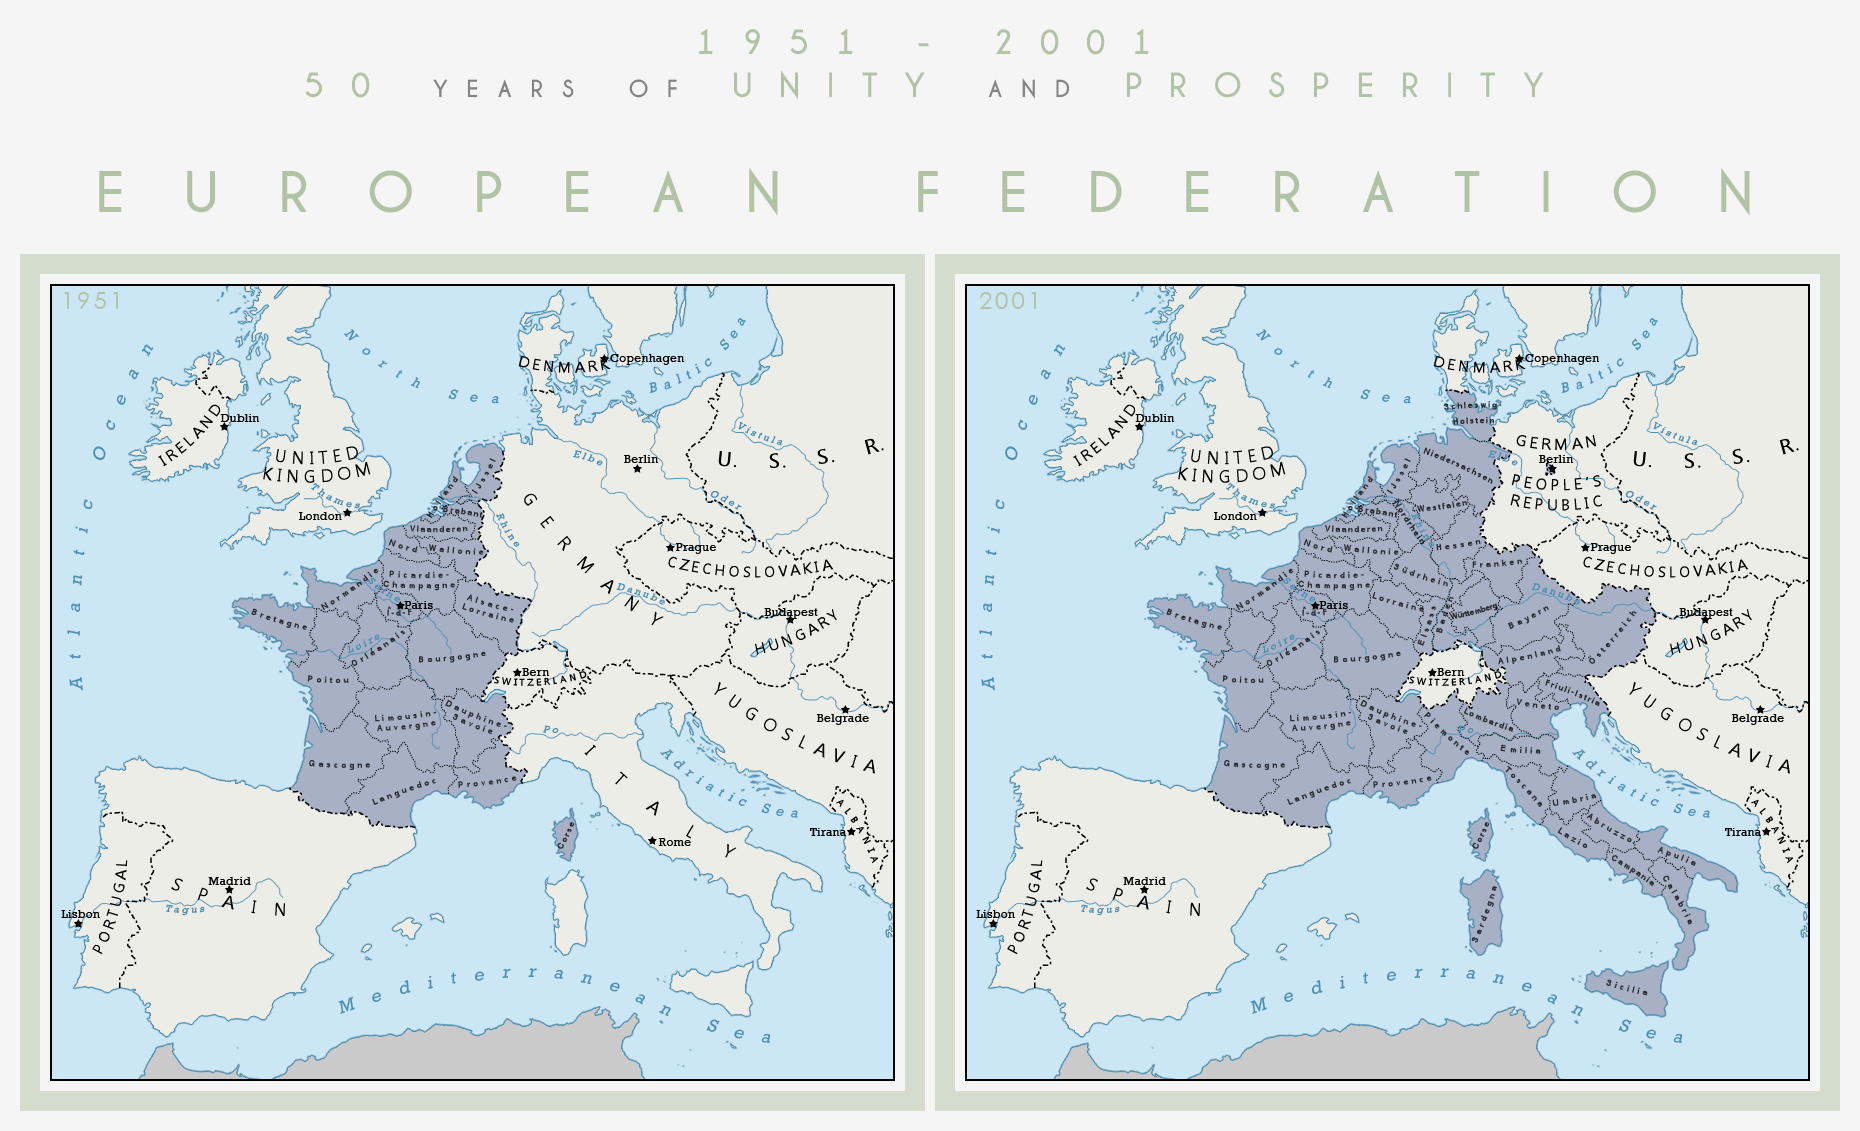 The european federation by 1blomma on deviantart the european federation by 1blomma the european federation by 1blomma gumiabroncs Choice Image